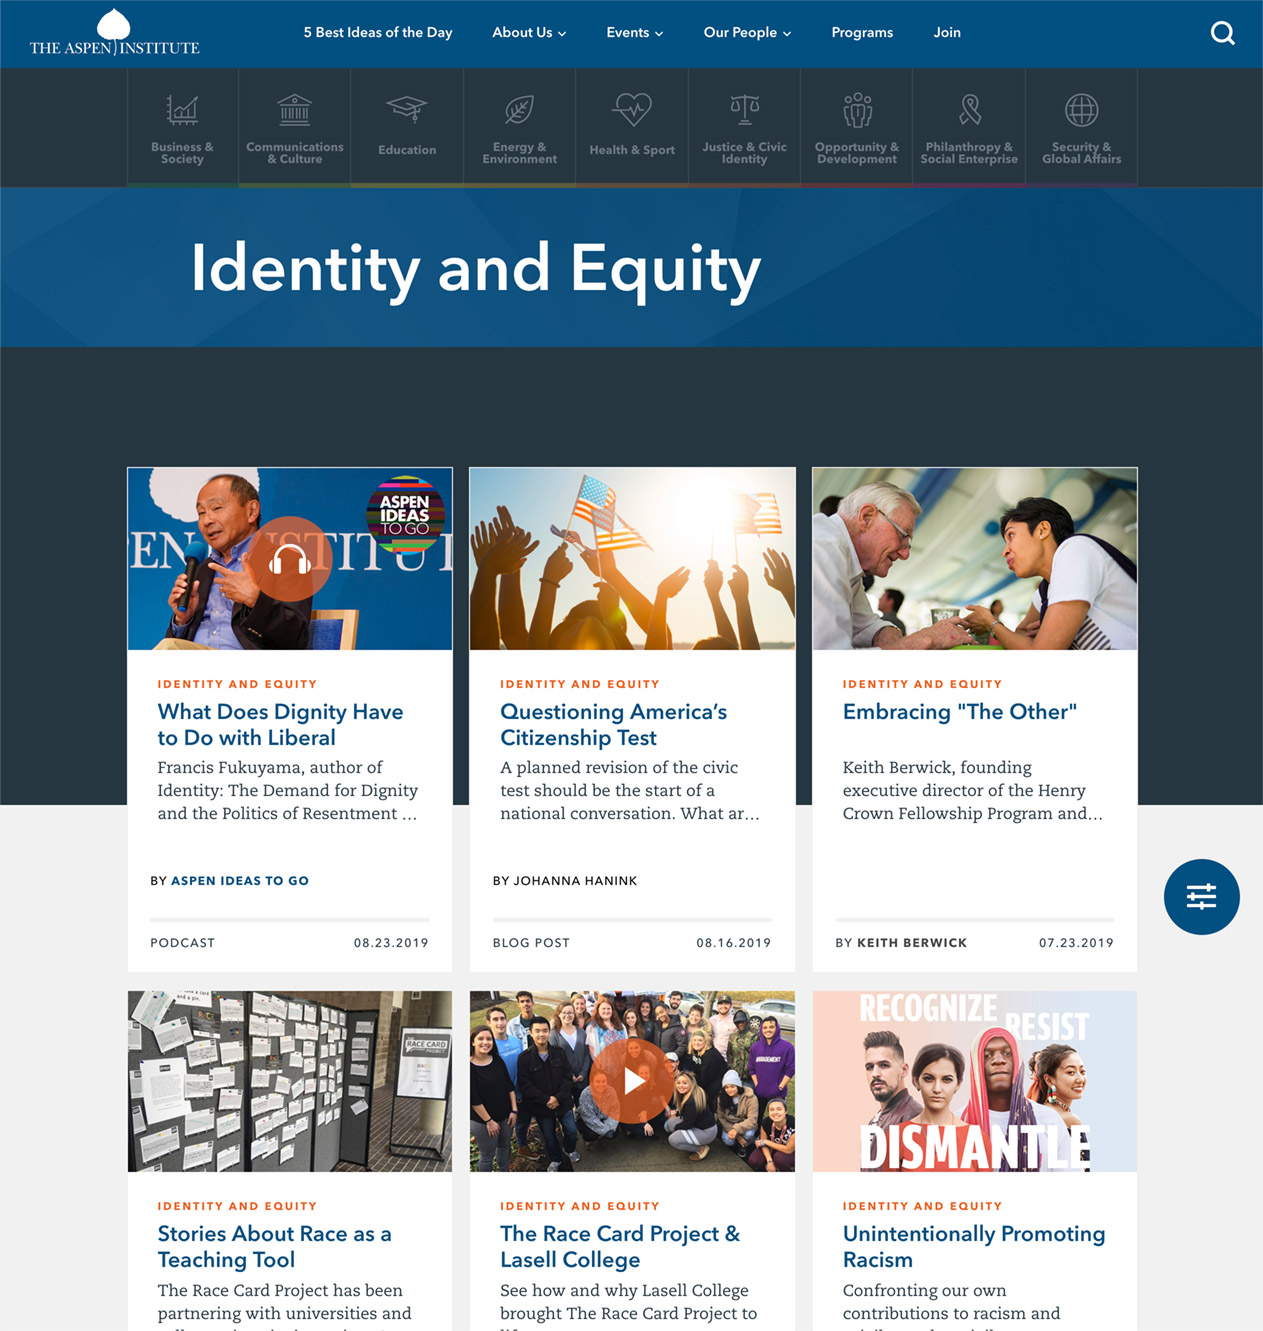 Identity and Equity